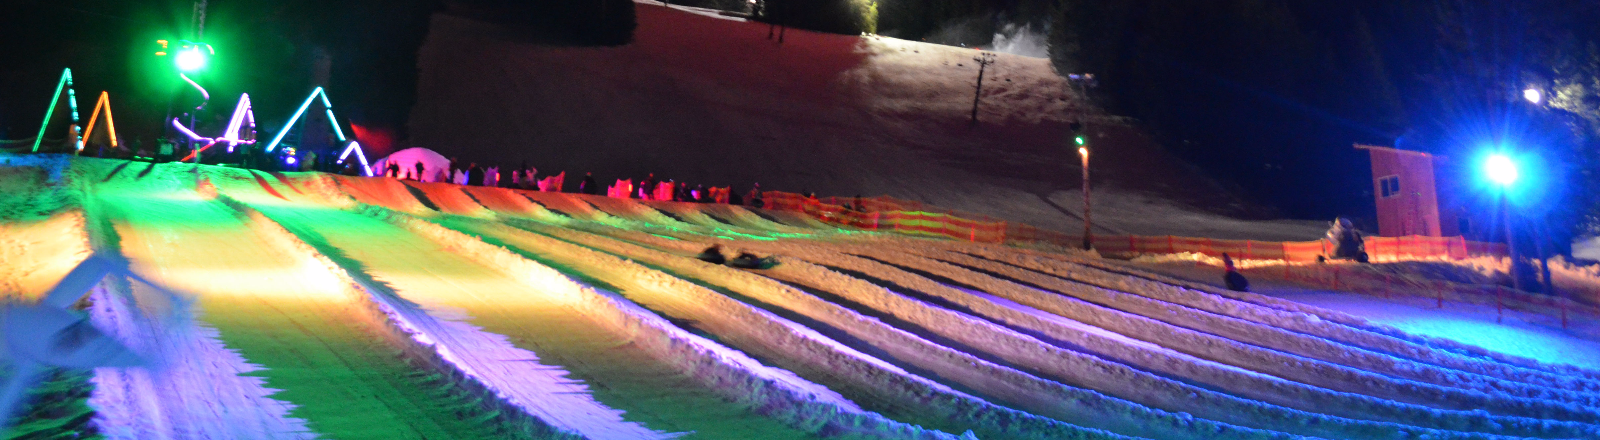 Multi-color fireworks burst into night sky over the Cosmic Tubing ski run bathed in neon lights at Mt. Hood Adventure Park